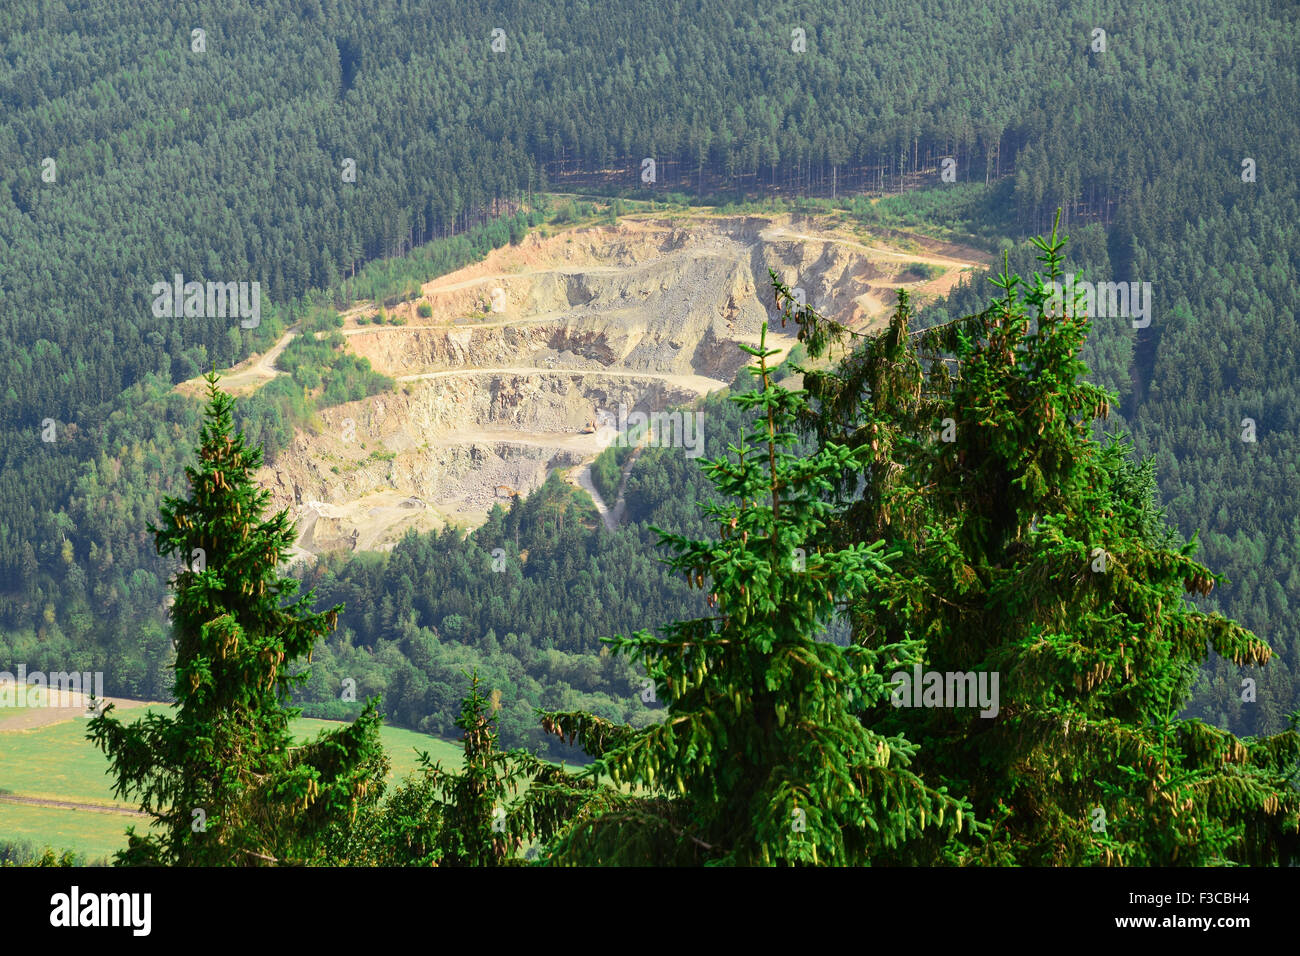 A stone quarry in the forest, Czech Republic - Stock Image